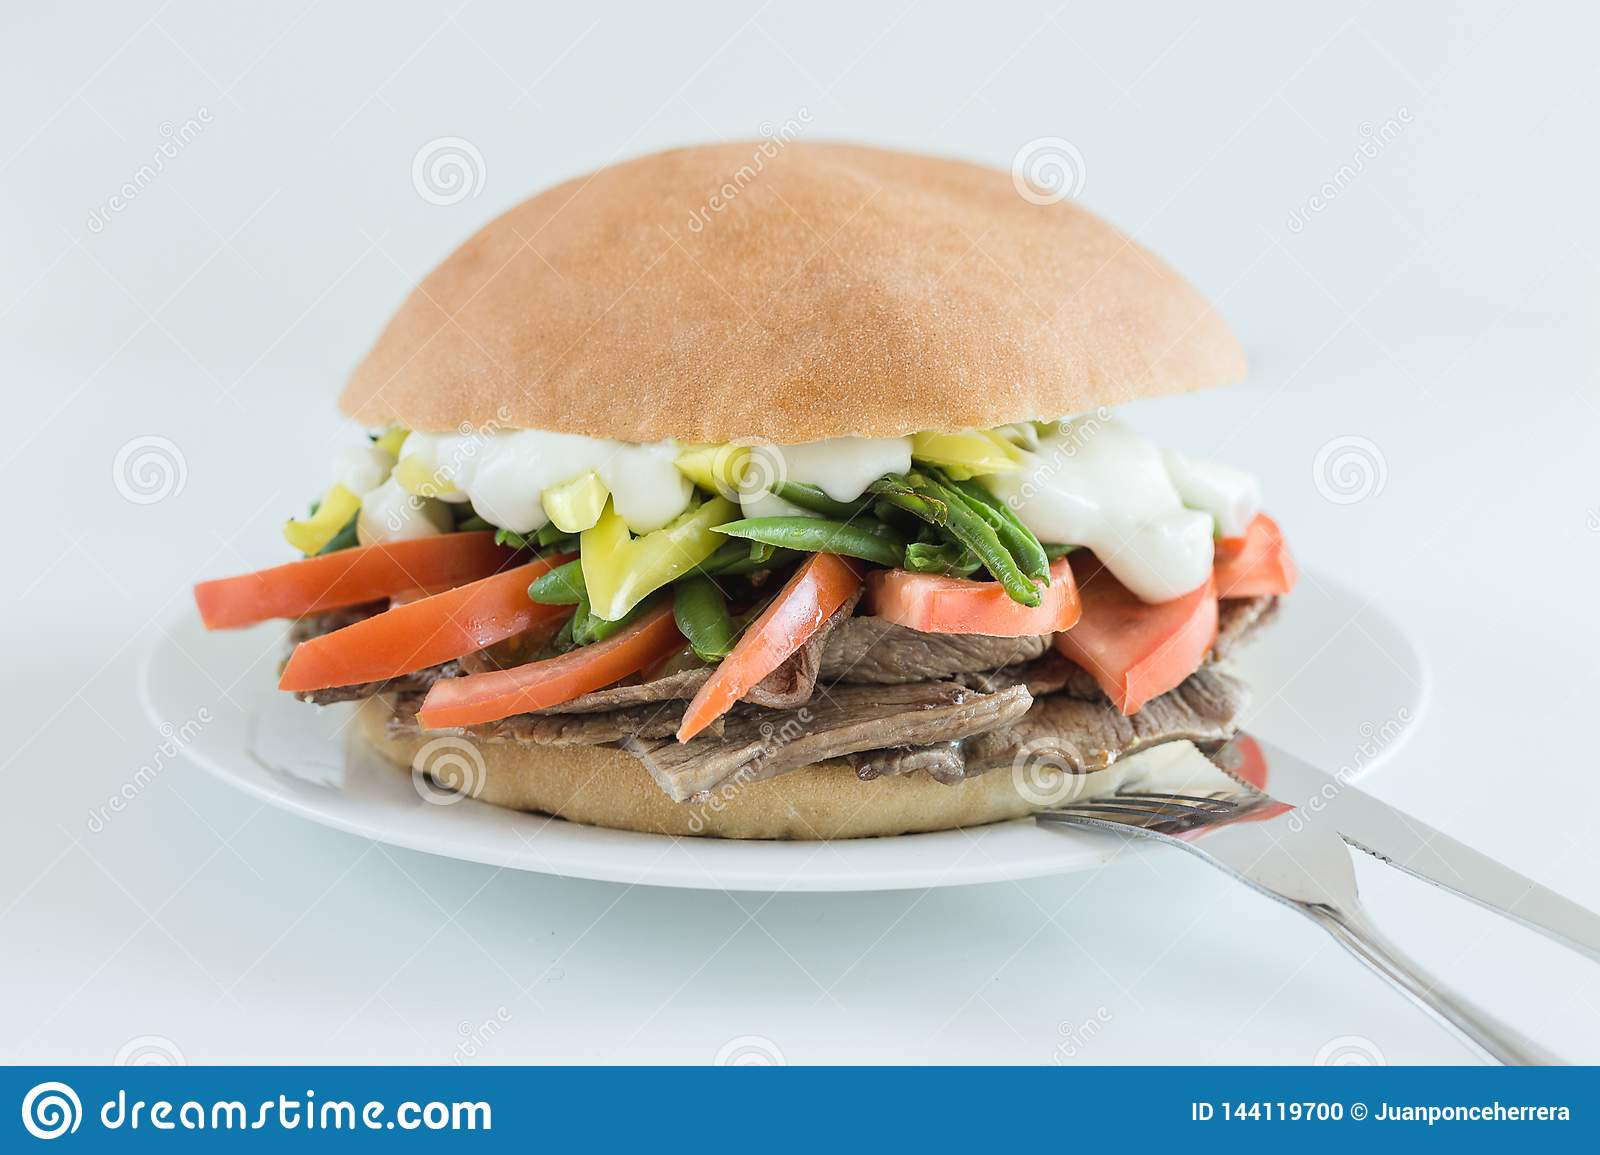 Meat sandwich with tomato, green beans, chili and mayonnaise with white background